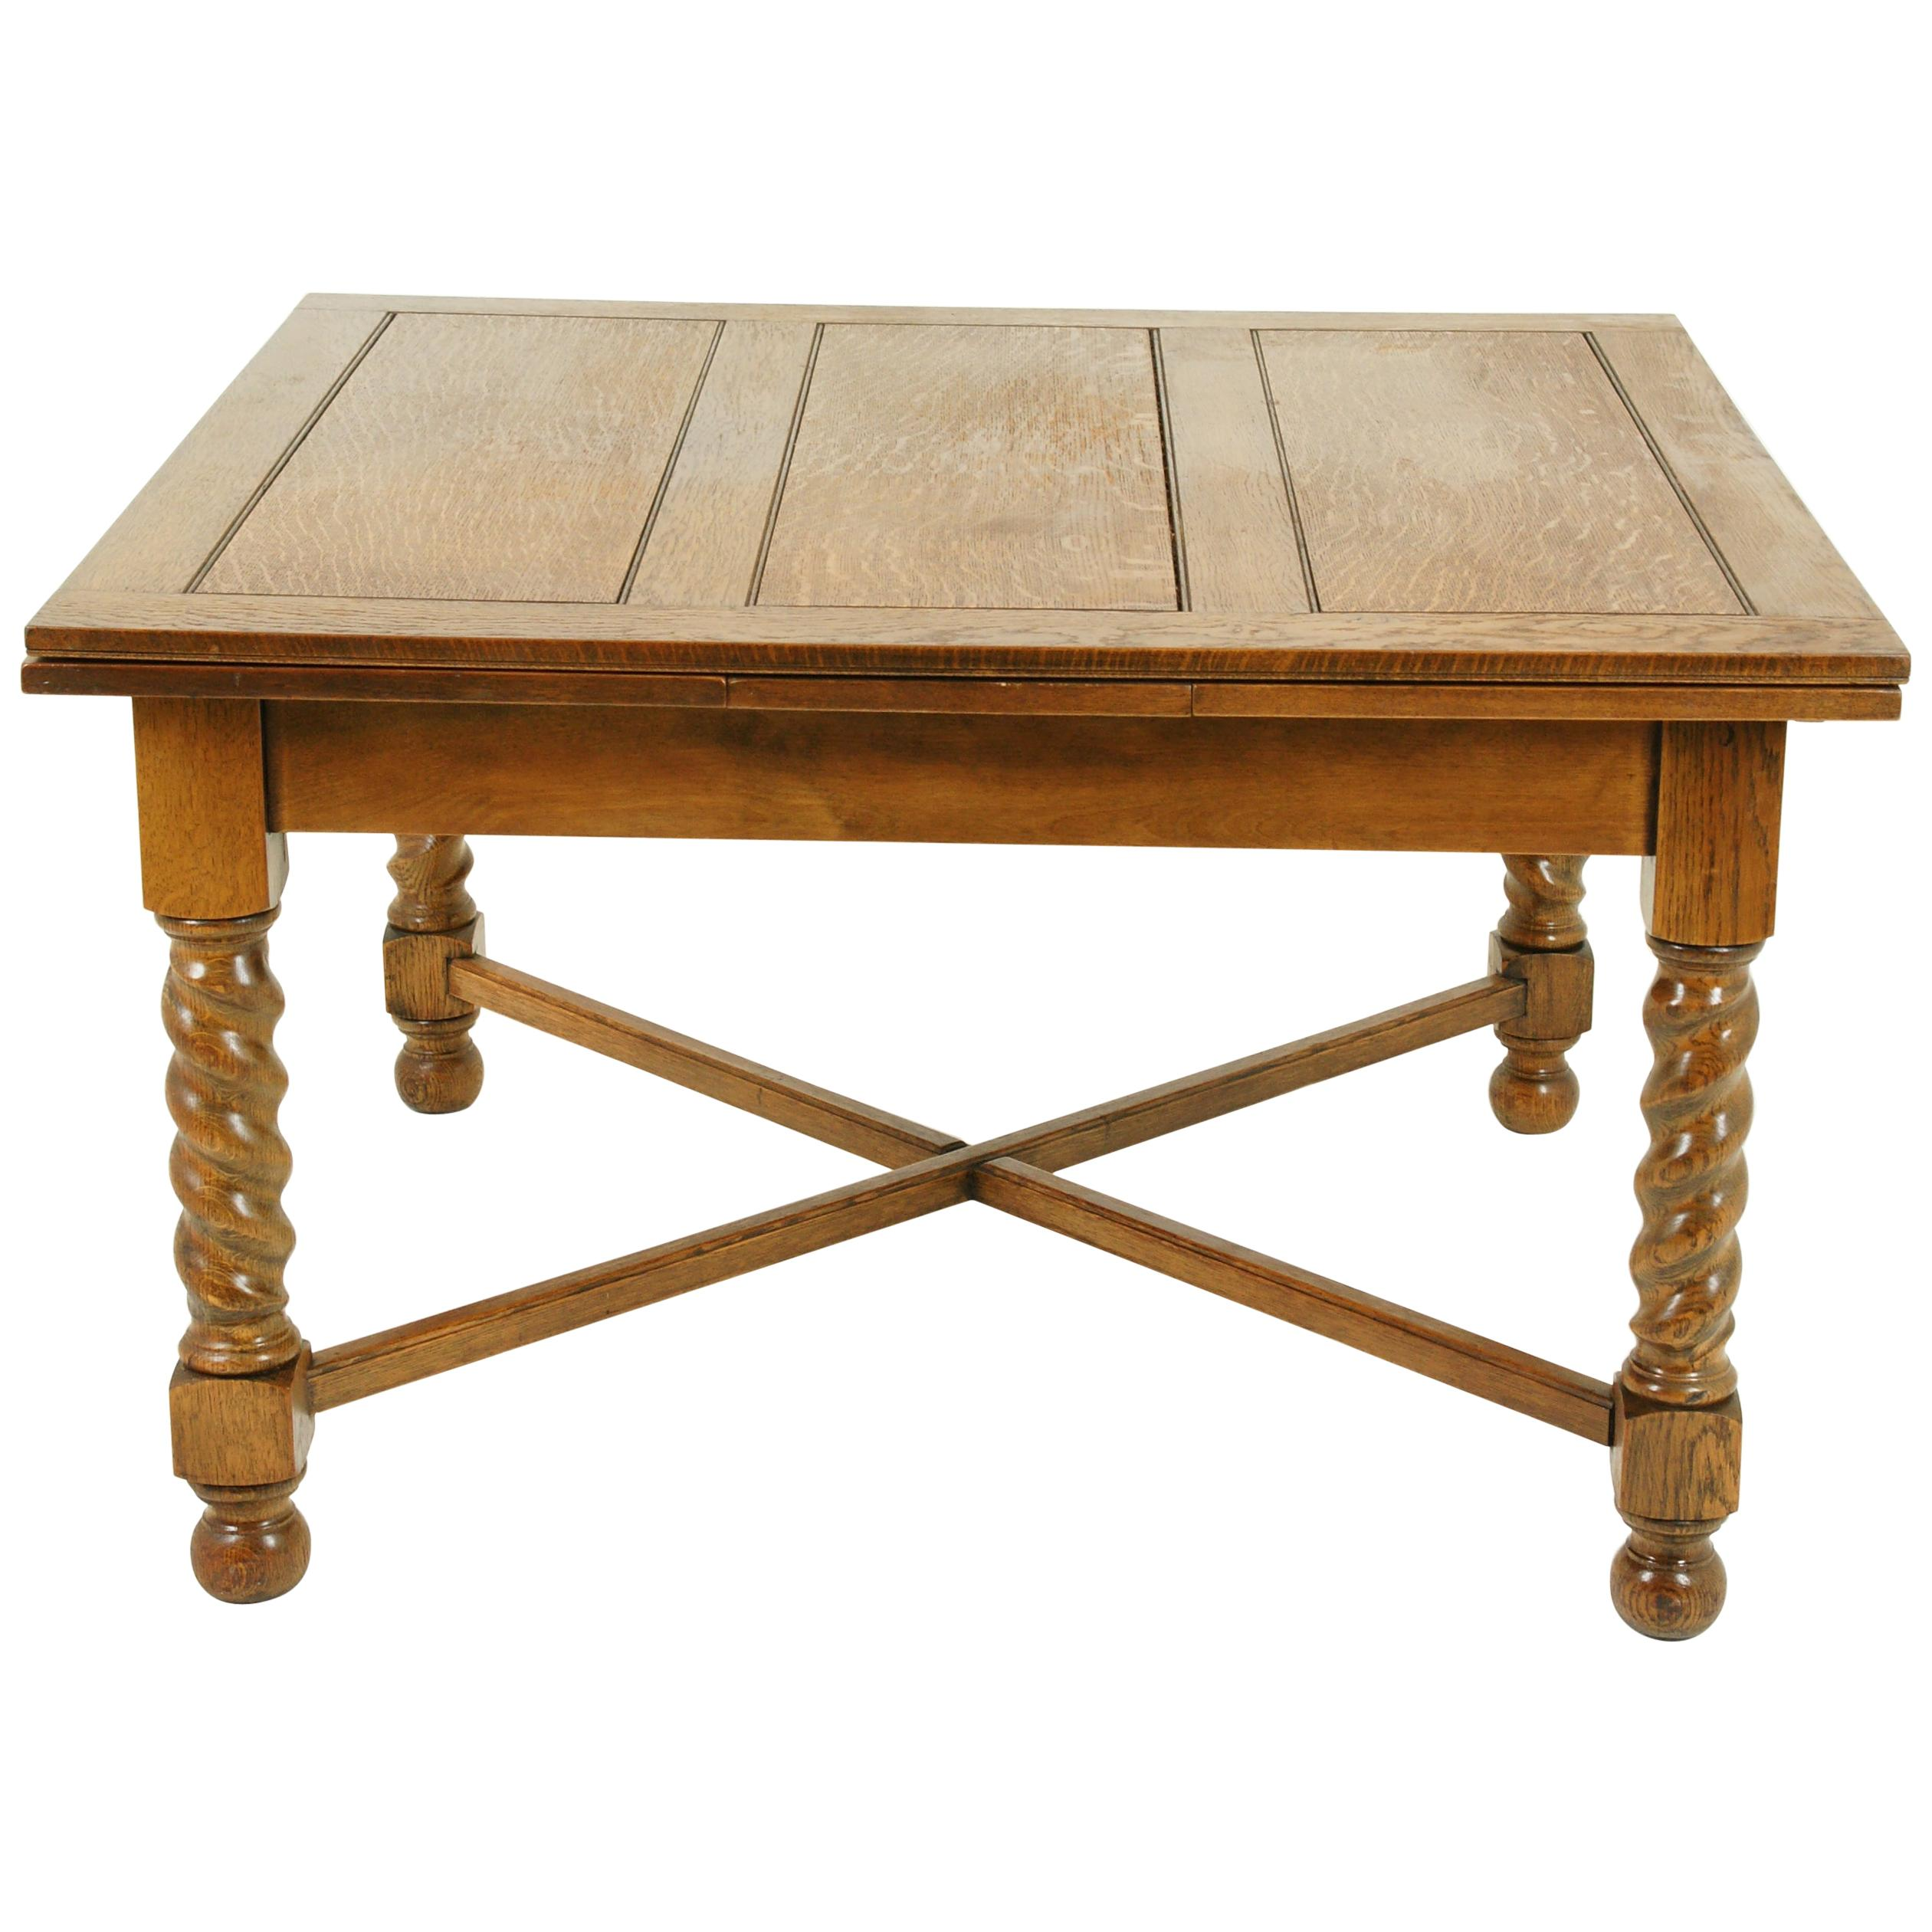 Antique Refectory Table, Antique Dining Table, Draw Leaf Table, 1920